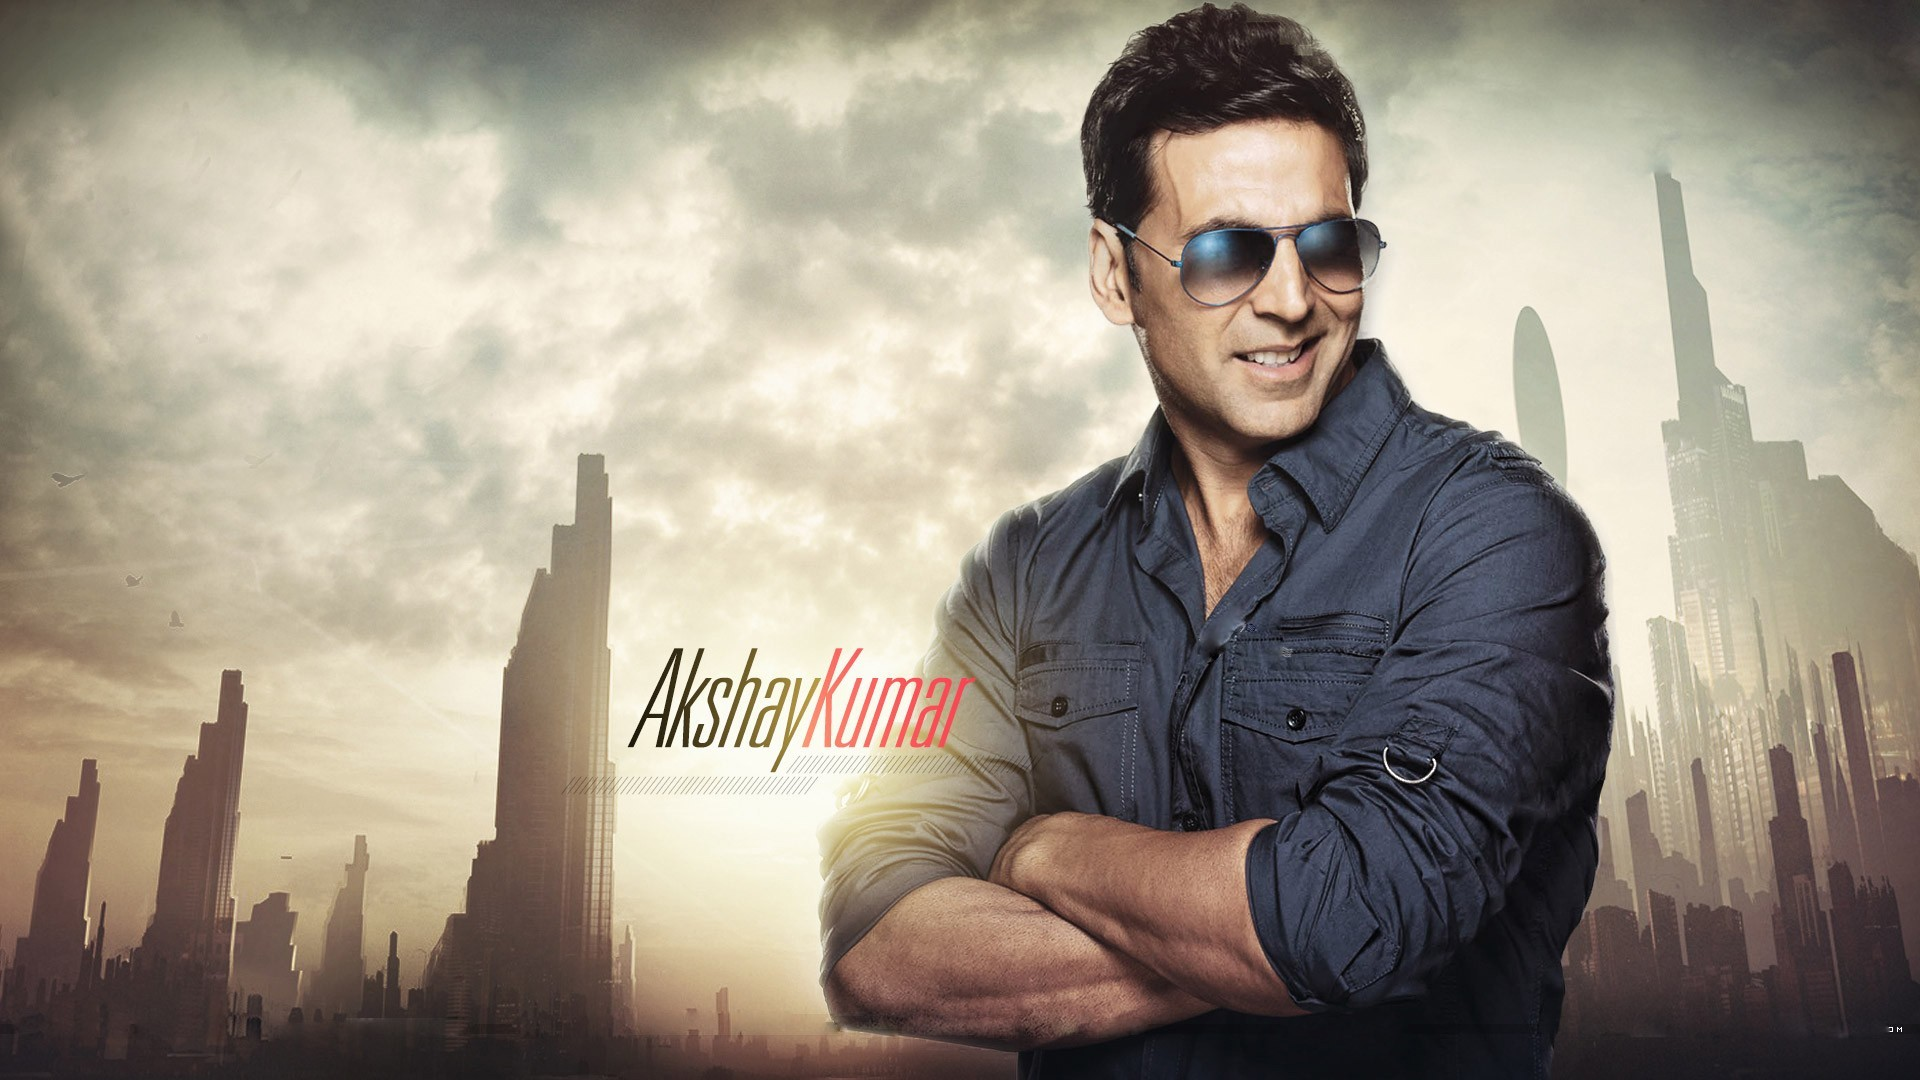 Celebrities in India, Top paid actor, Highest paid actor, most popular actor in India